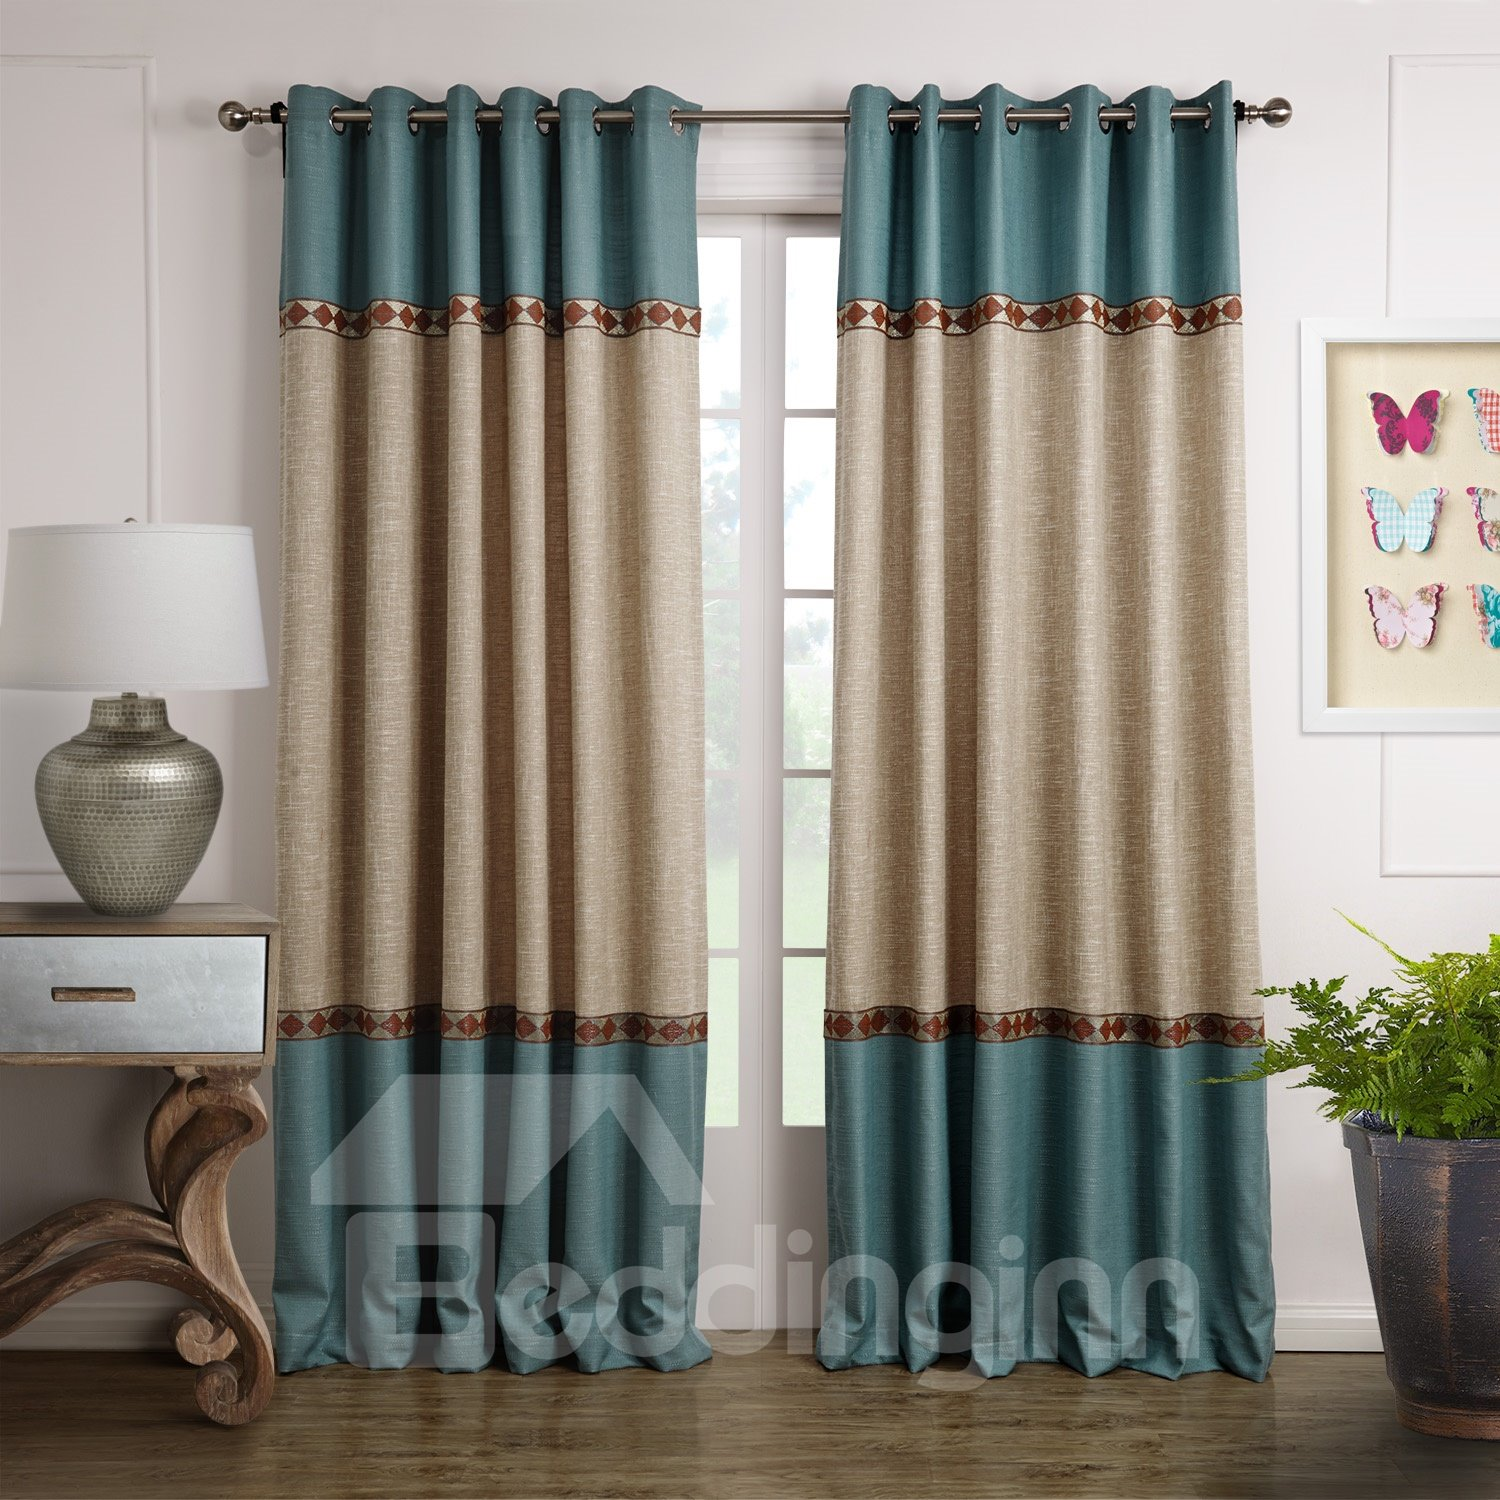 Fancy blue and beige joint color decorative border design for Curtains and drapes